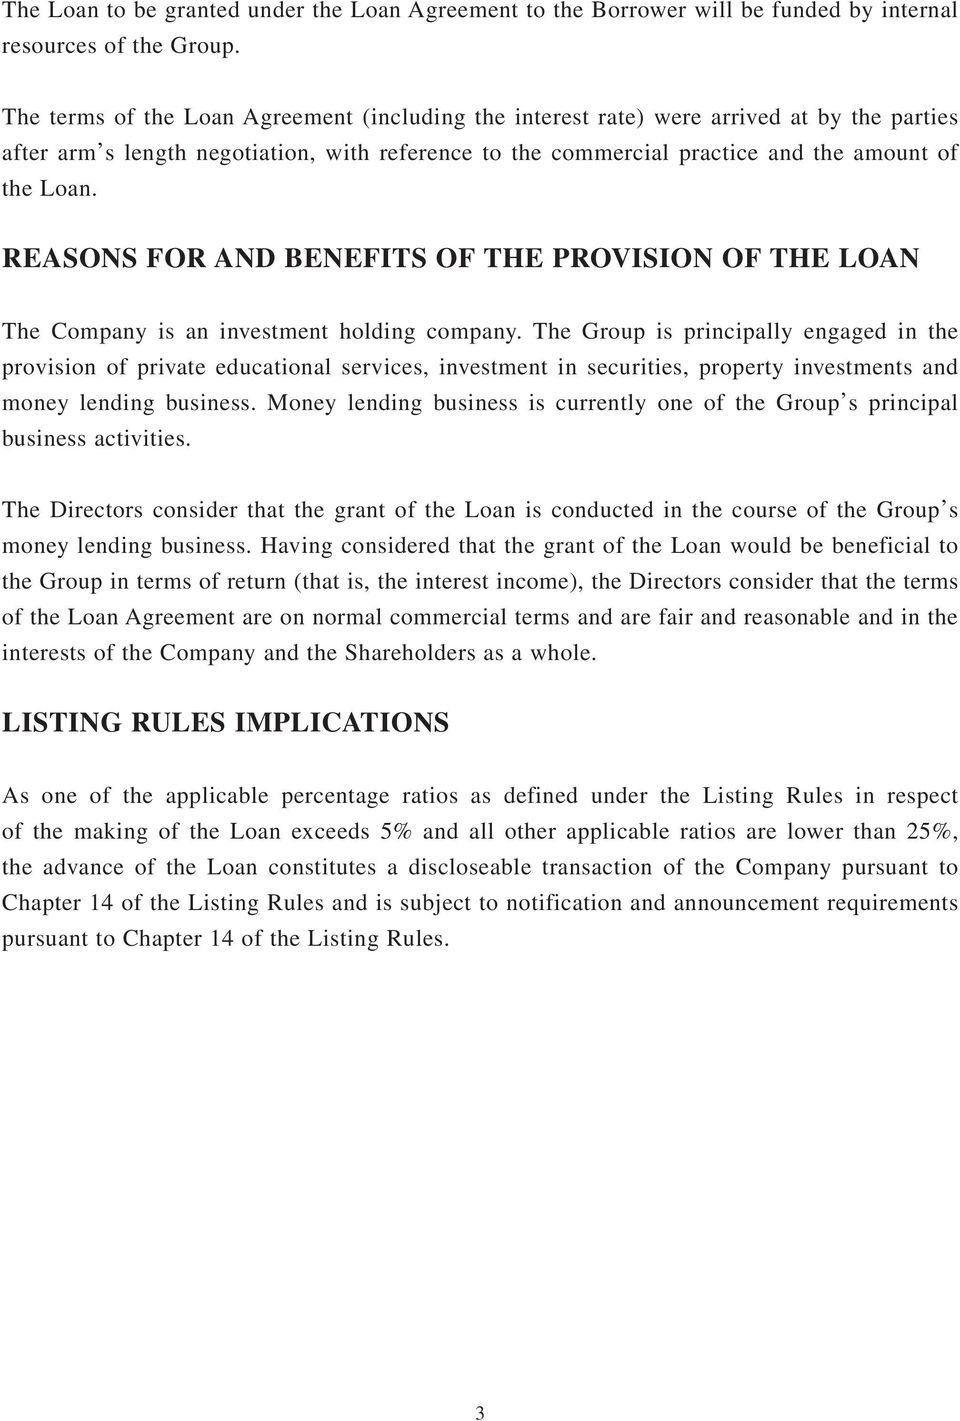 REASONS FOR AND BENEFITS OF THE PROVISION OF THE LOAN The Company is an investment holding company.